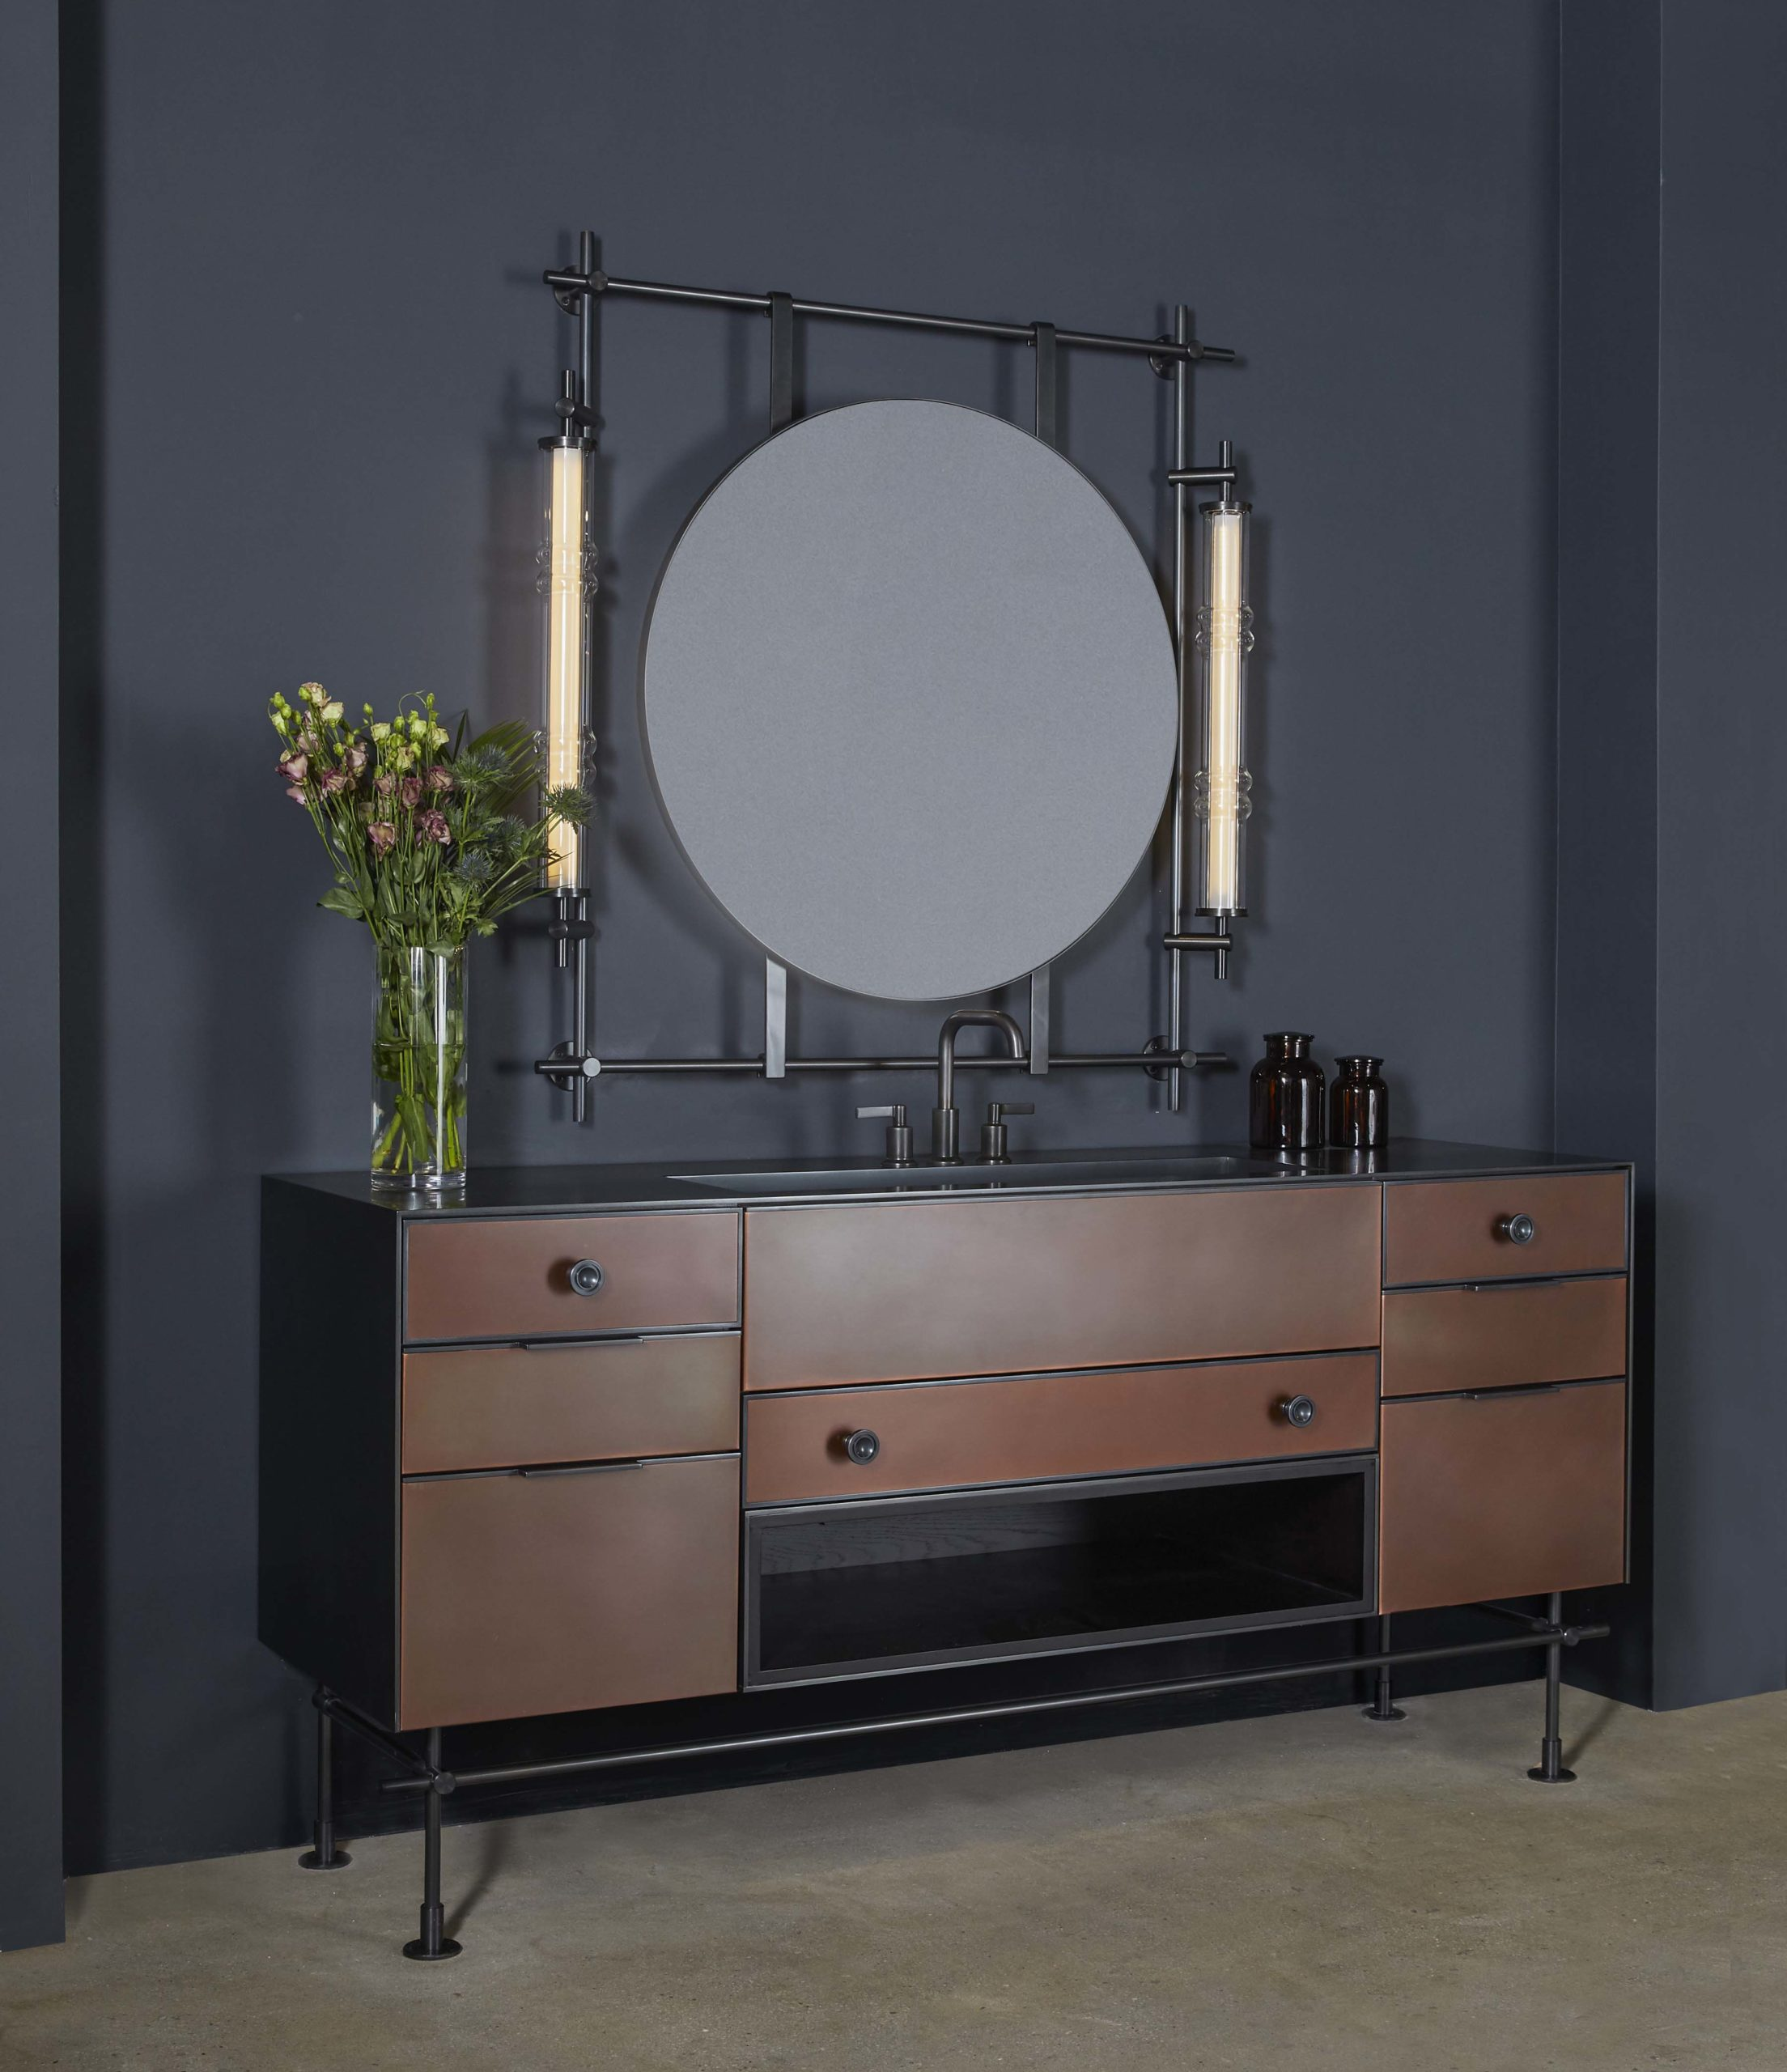 amuneal_products_WNWN_NYDC_collectors_round_vanity_mirror_totem_sconces_copper_front_angle-scaled-1